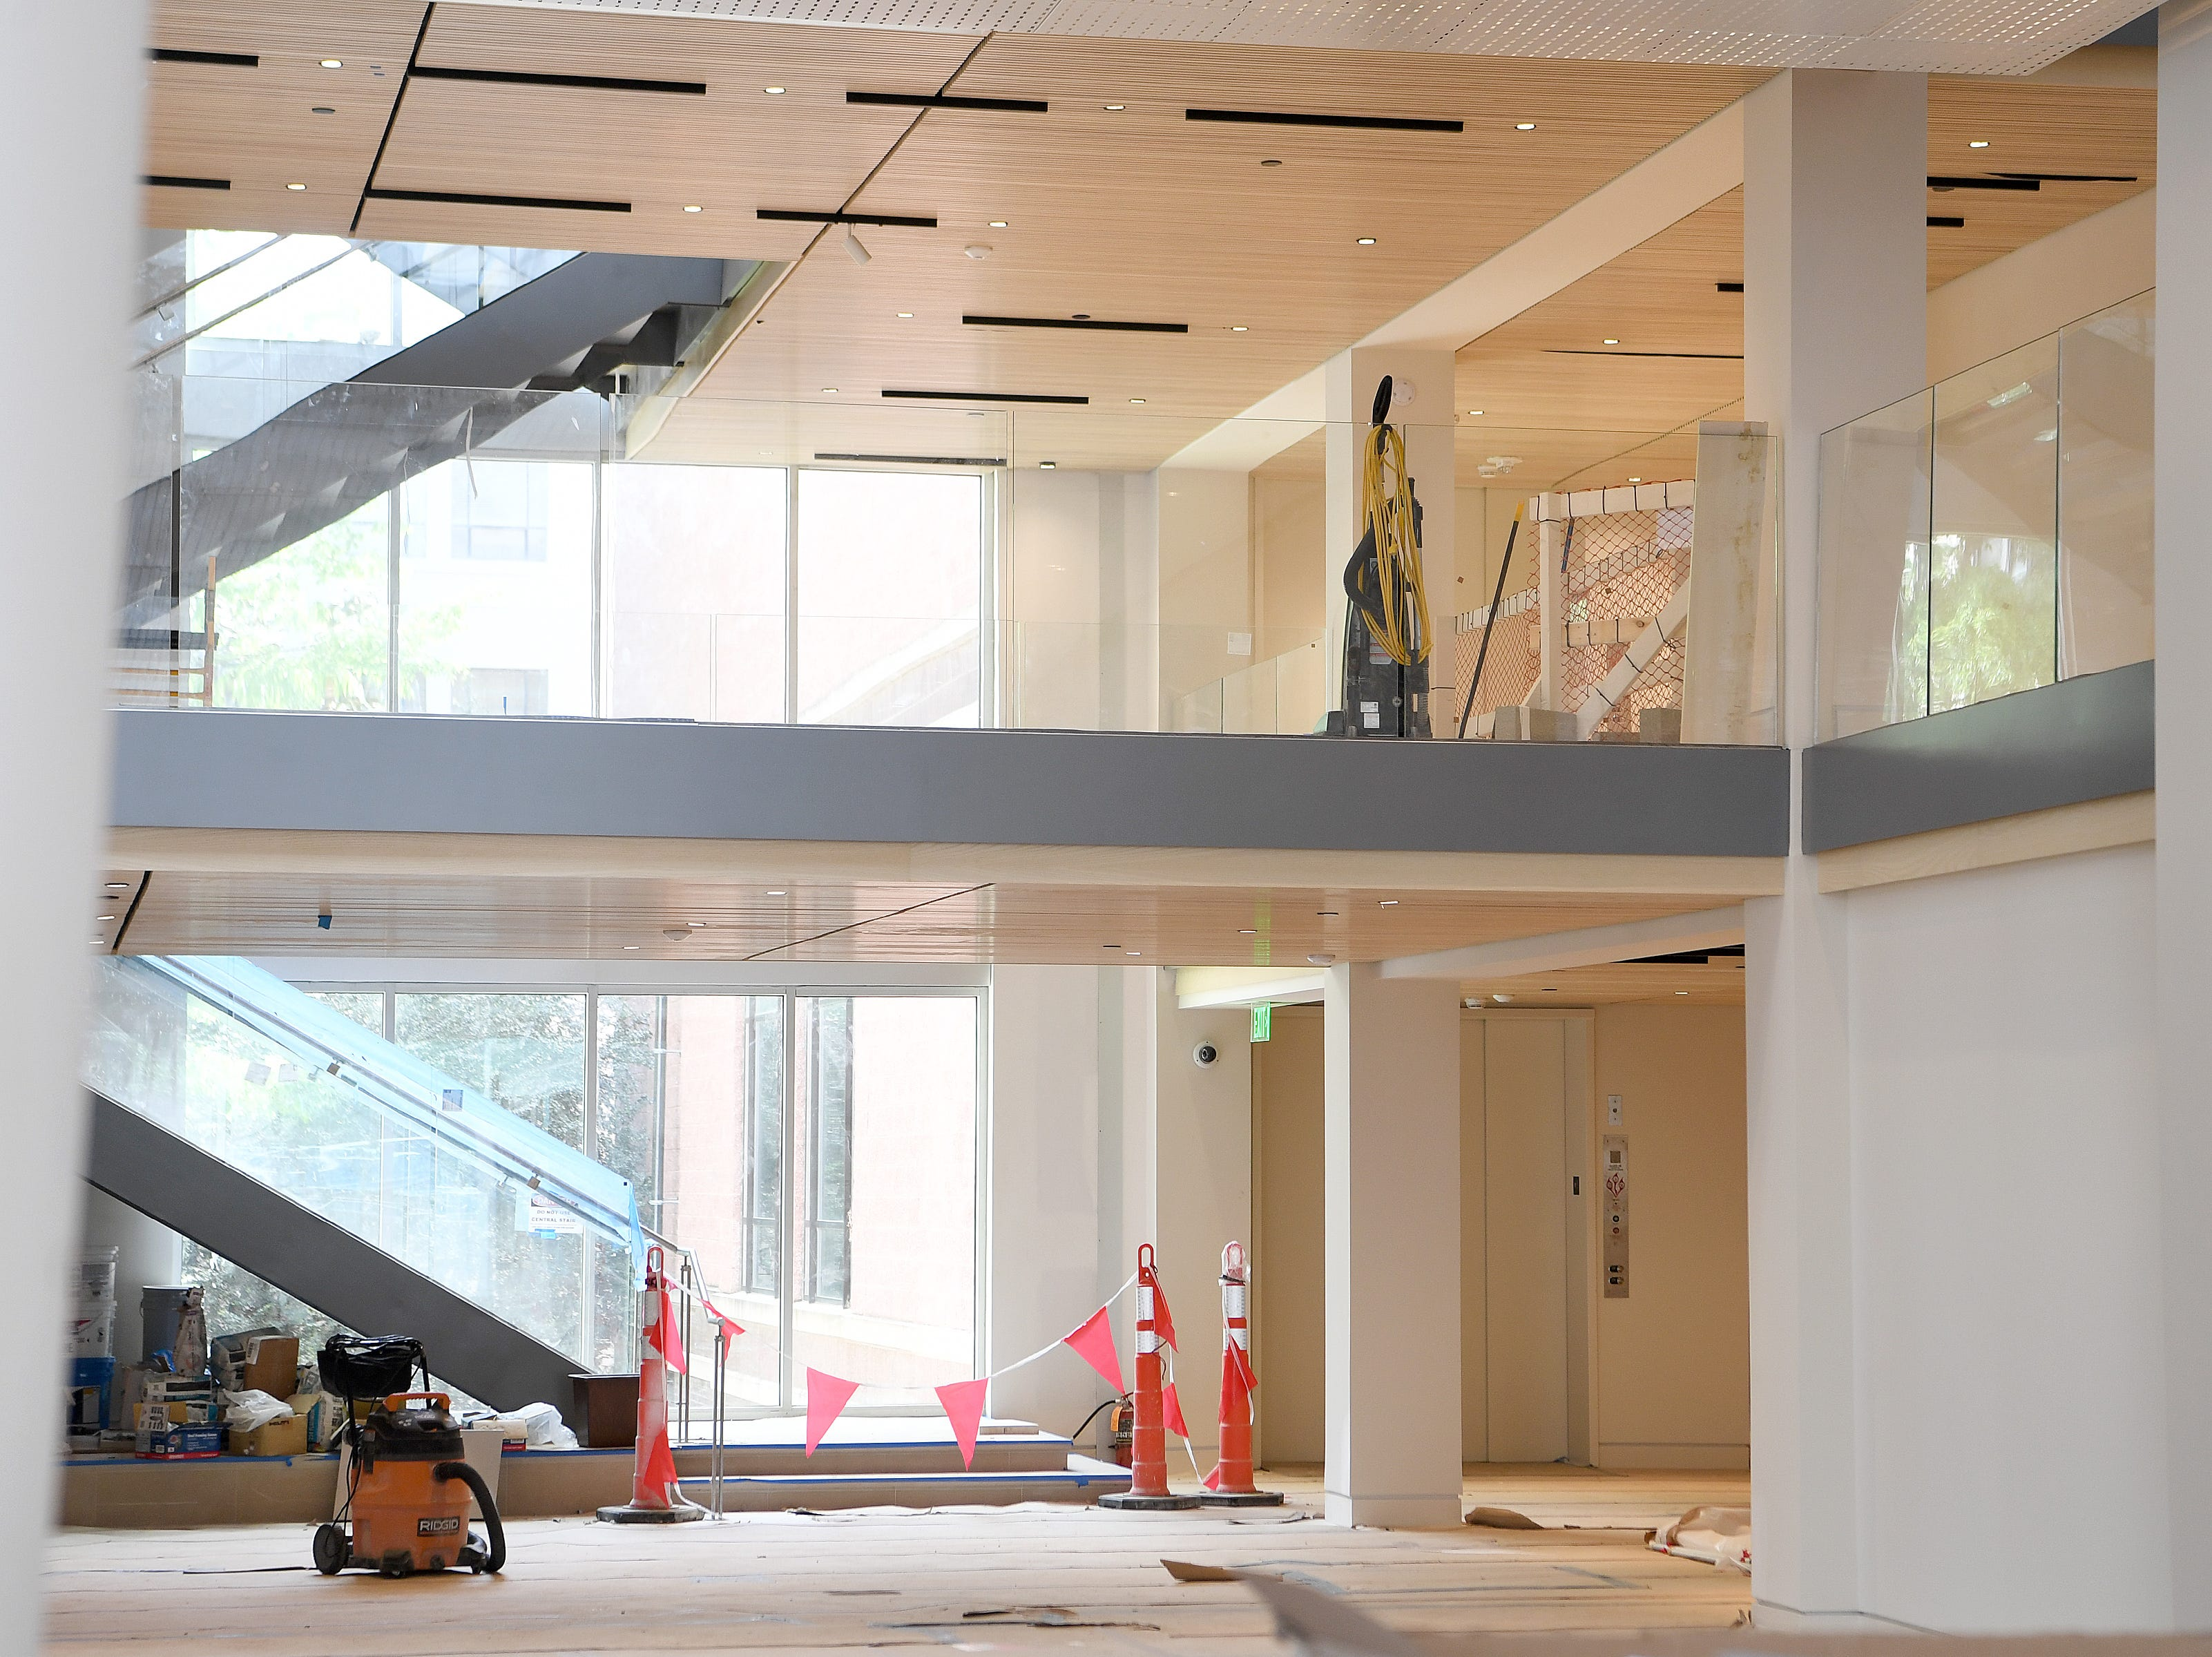 Construction is wrapping up in the new Asheville Art Museum which is part renovation, part historic preservation of the 1926 Pack Library building and part new construction and is scheduled to open sometime this summer.